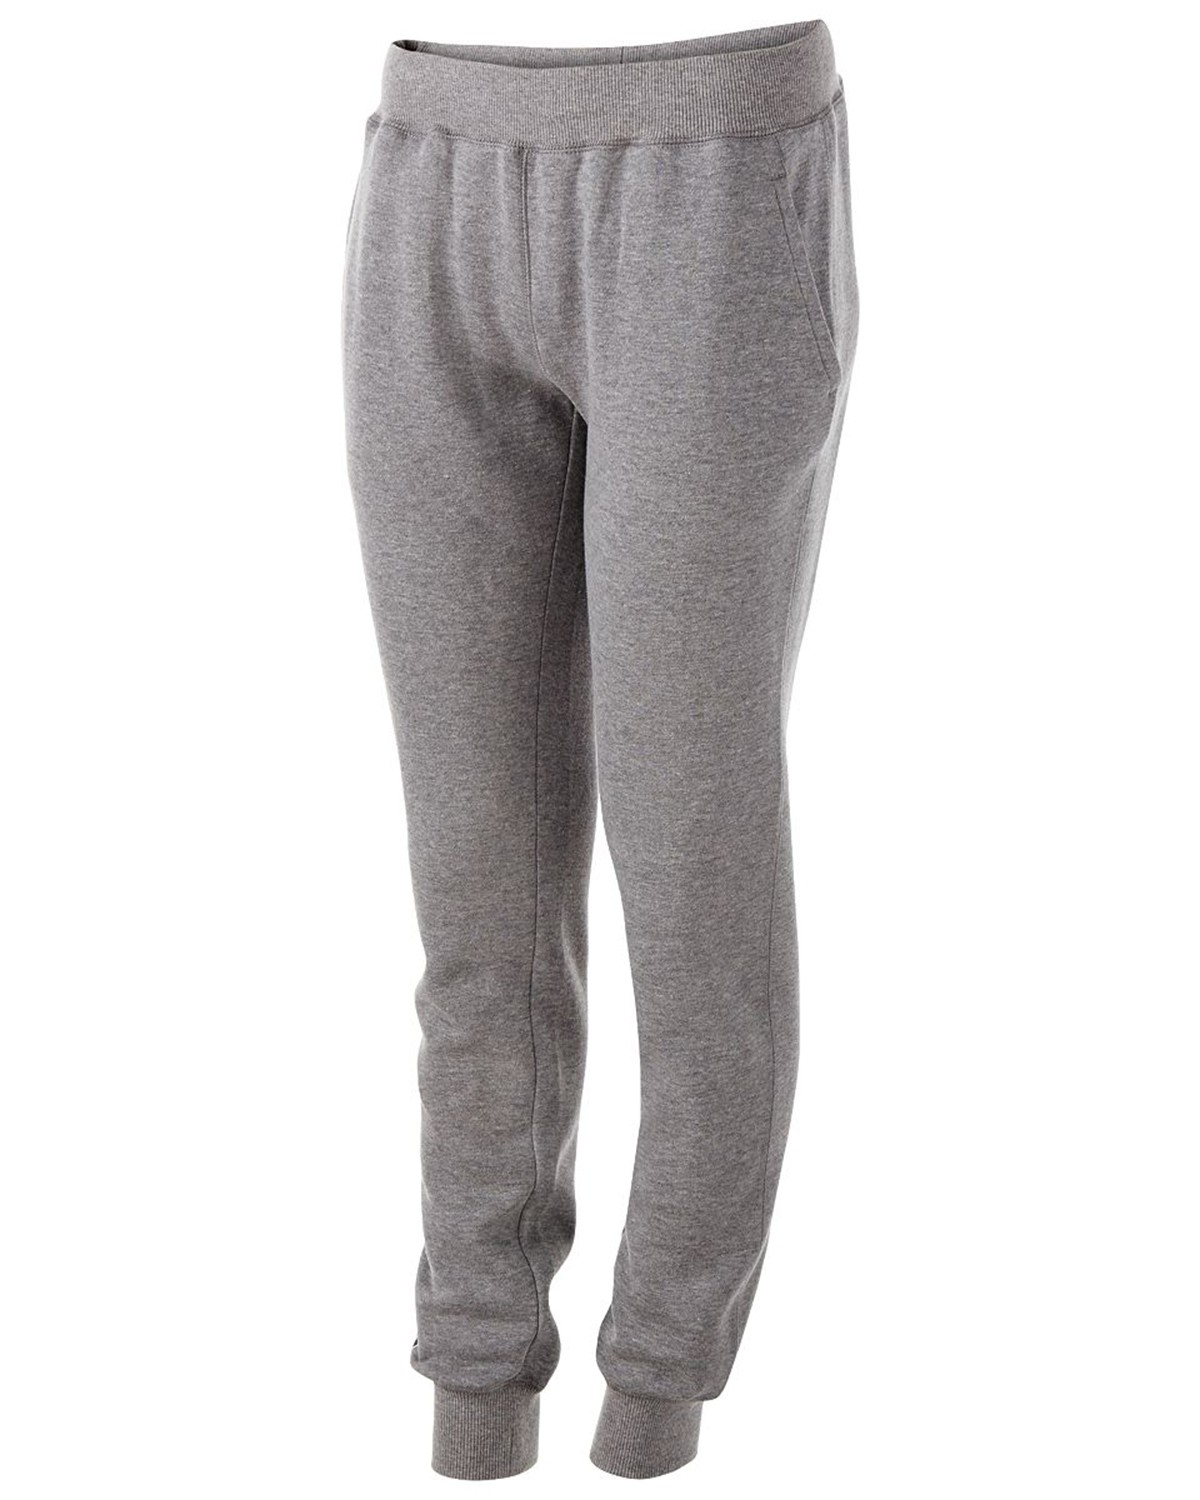 229748 Holloway CHARCOAL HEATHER